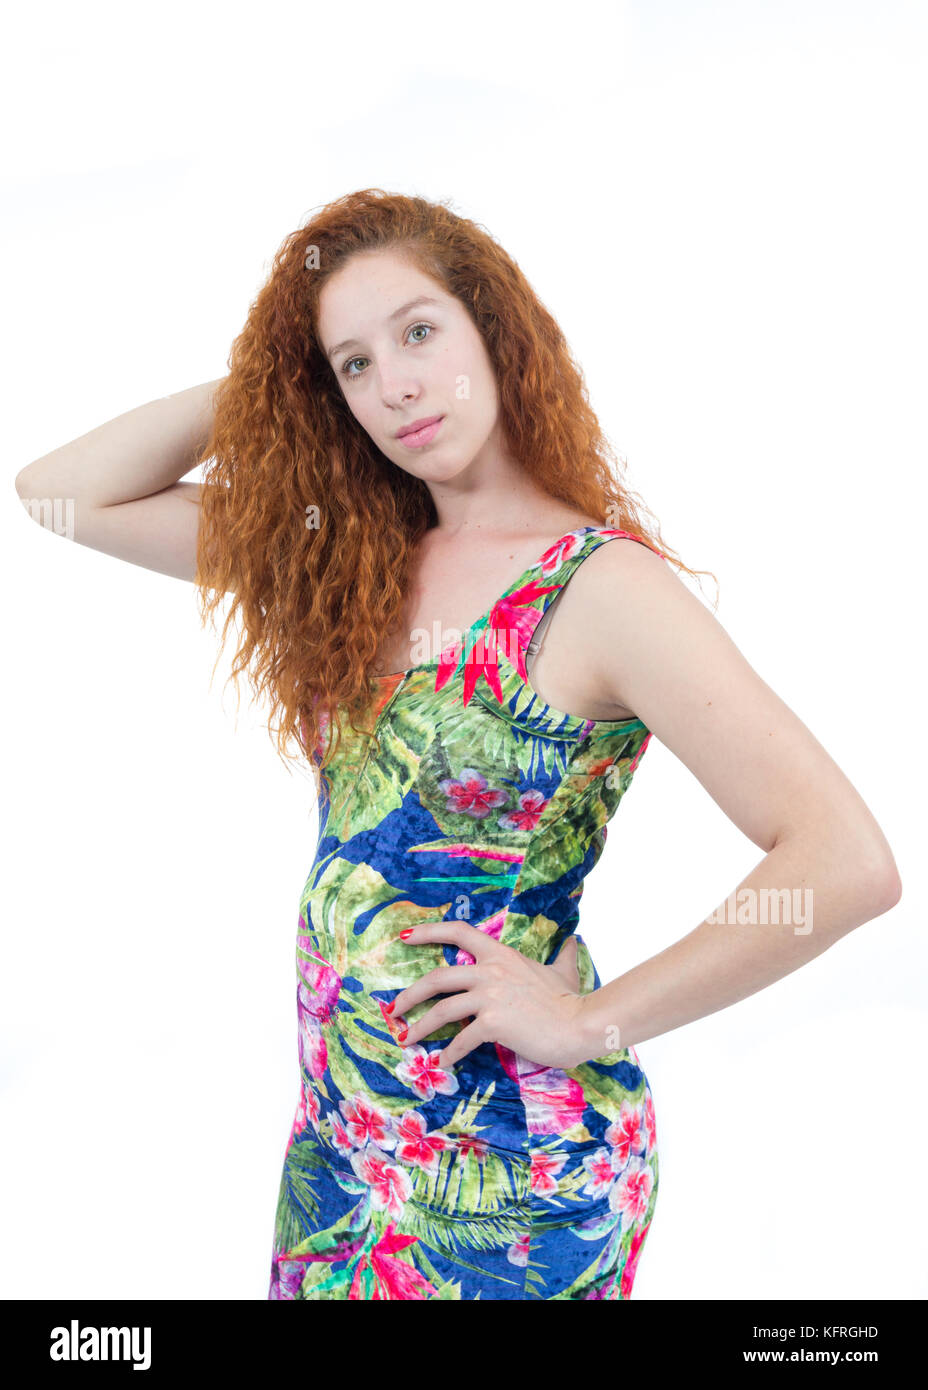 Young woman stands with hand on waist and looks at camera. Redhead teenager with wavy hair. Tropical print dress. - Stock Image